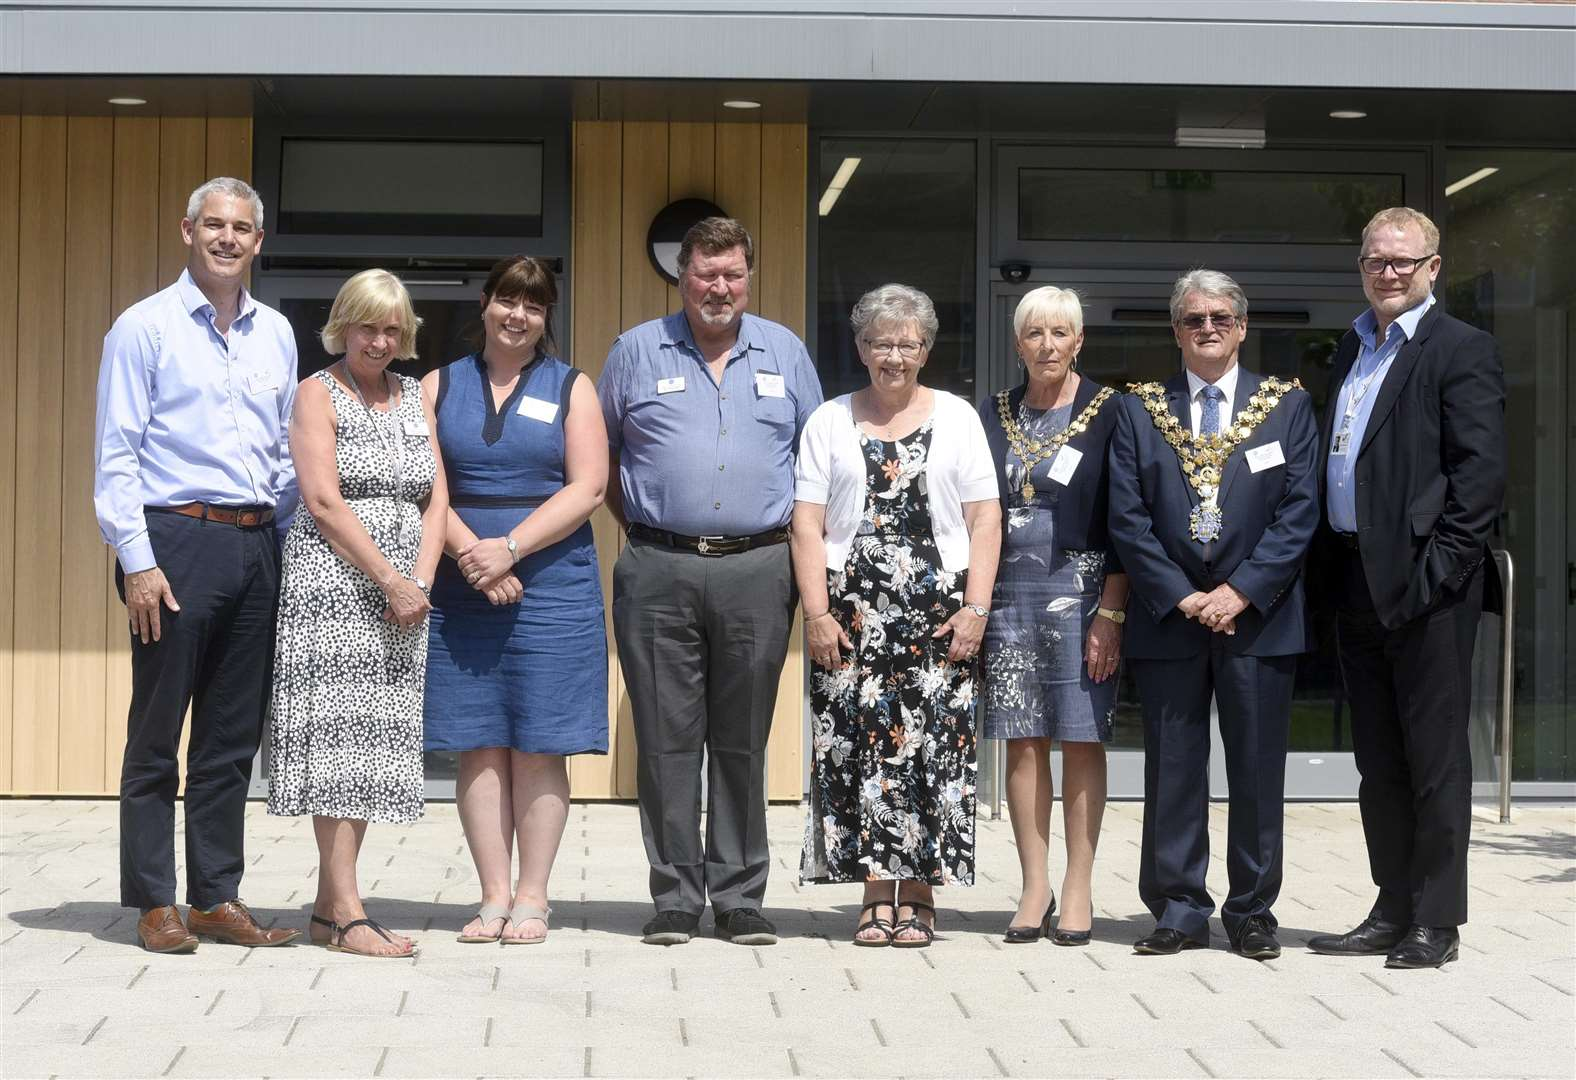 VIP day as Nene and Ramnoth school in Wisbech celebrates official opening of phase one of new extension